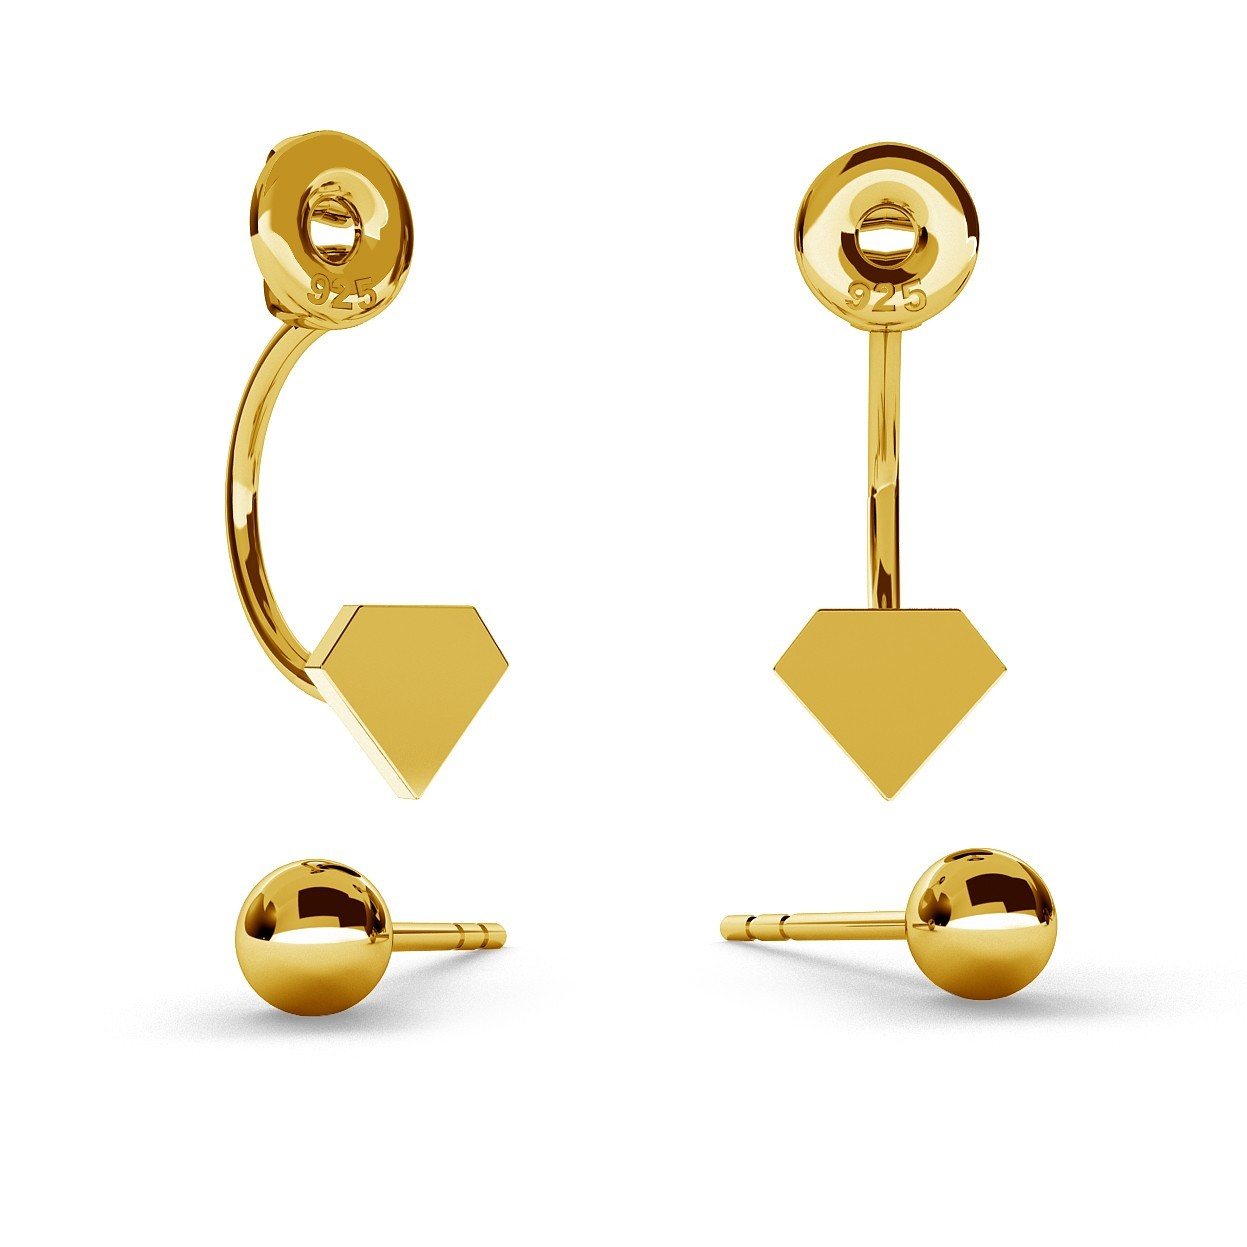 SWING EARRINGS BALL & DIAMOND WITH ENGRAVE